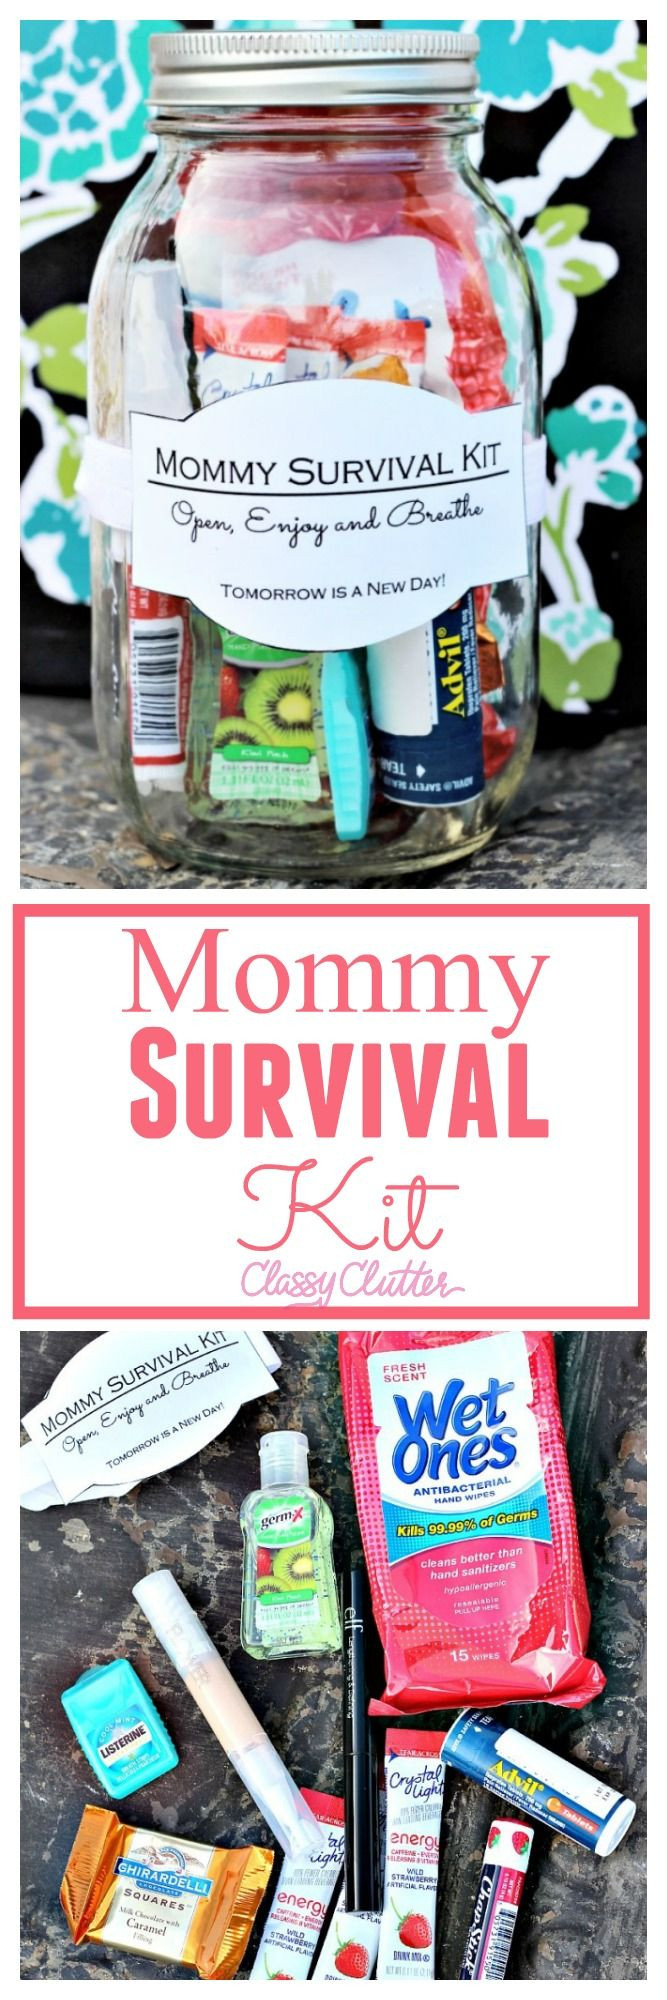 Best ideas about Gift Ideas For Someone Who Just Had A Baby . Save or Pin 17 Best ideas about Survival Kit Gifts on Pinterest Now.